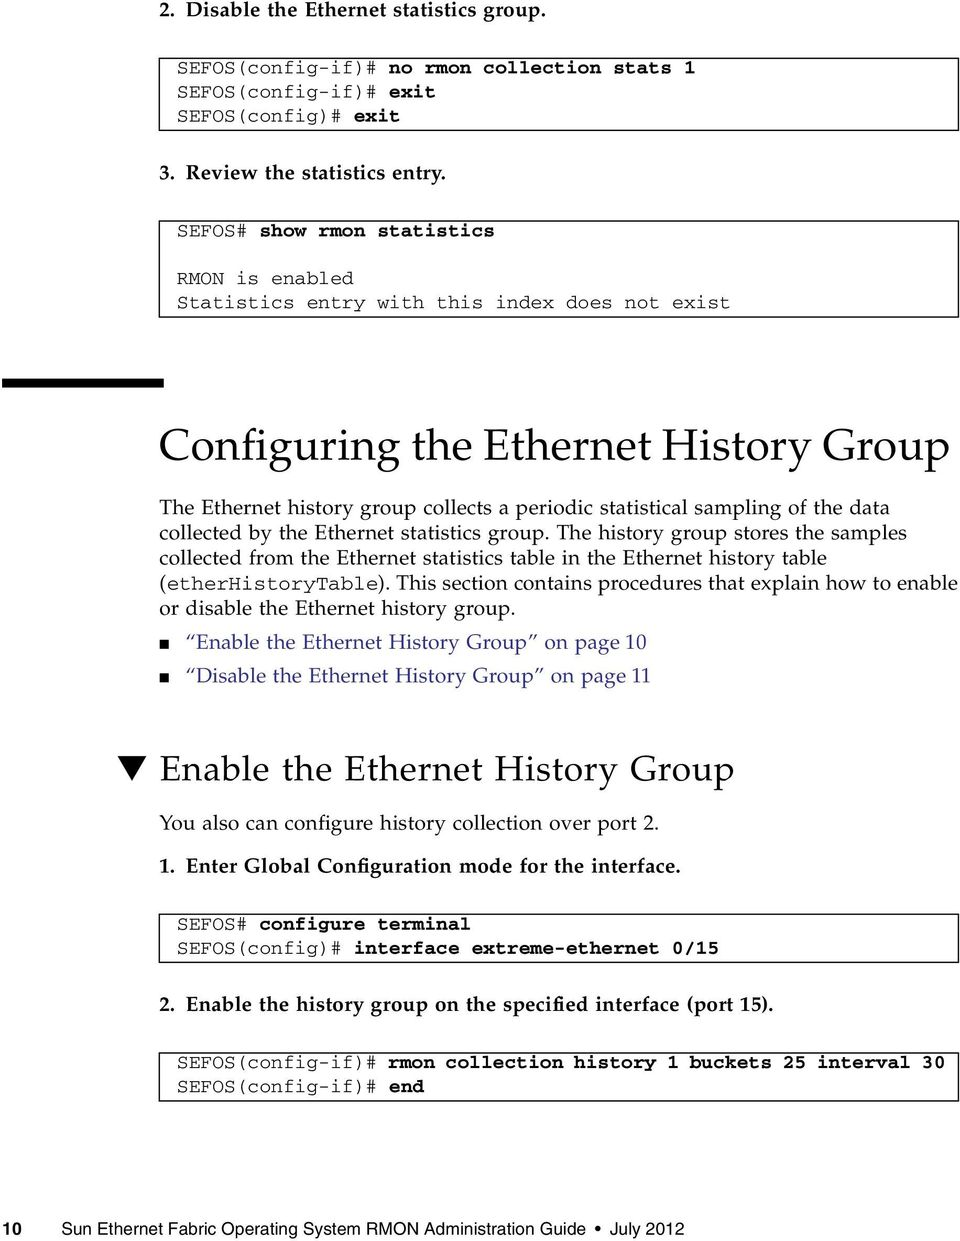 of the data collected by the Ethernet statistics group. The history group stores the samples collected from the Ethernet statistics table in the Ethernet history table (etherhistorytable).